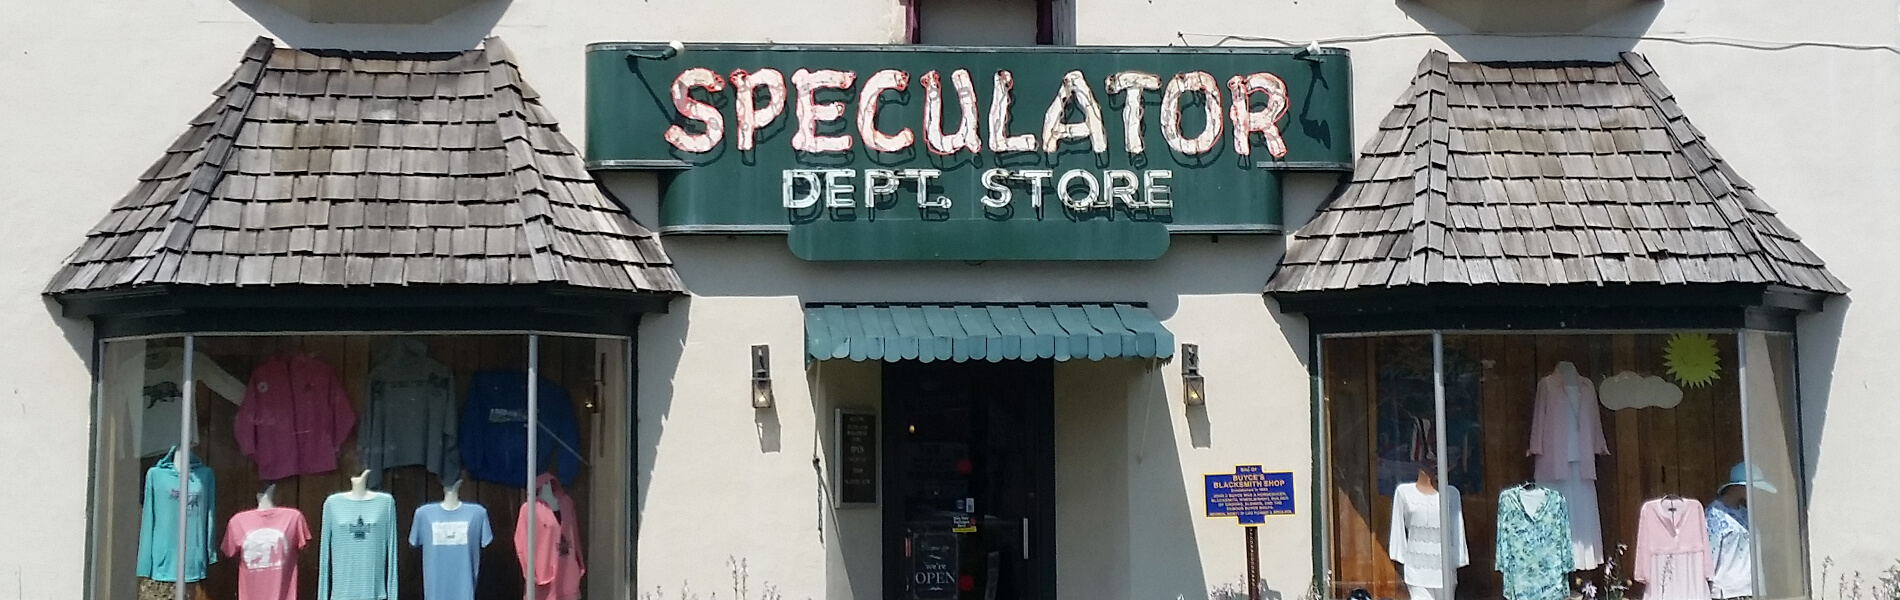 Speculator Department Store entrance